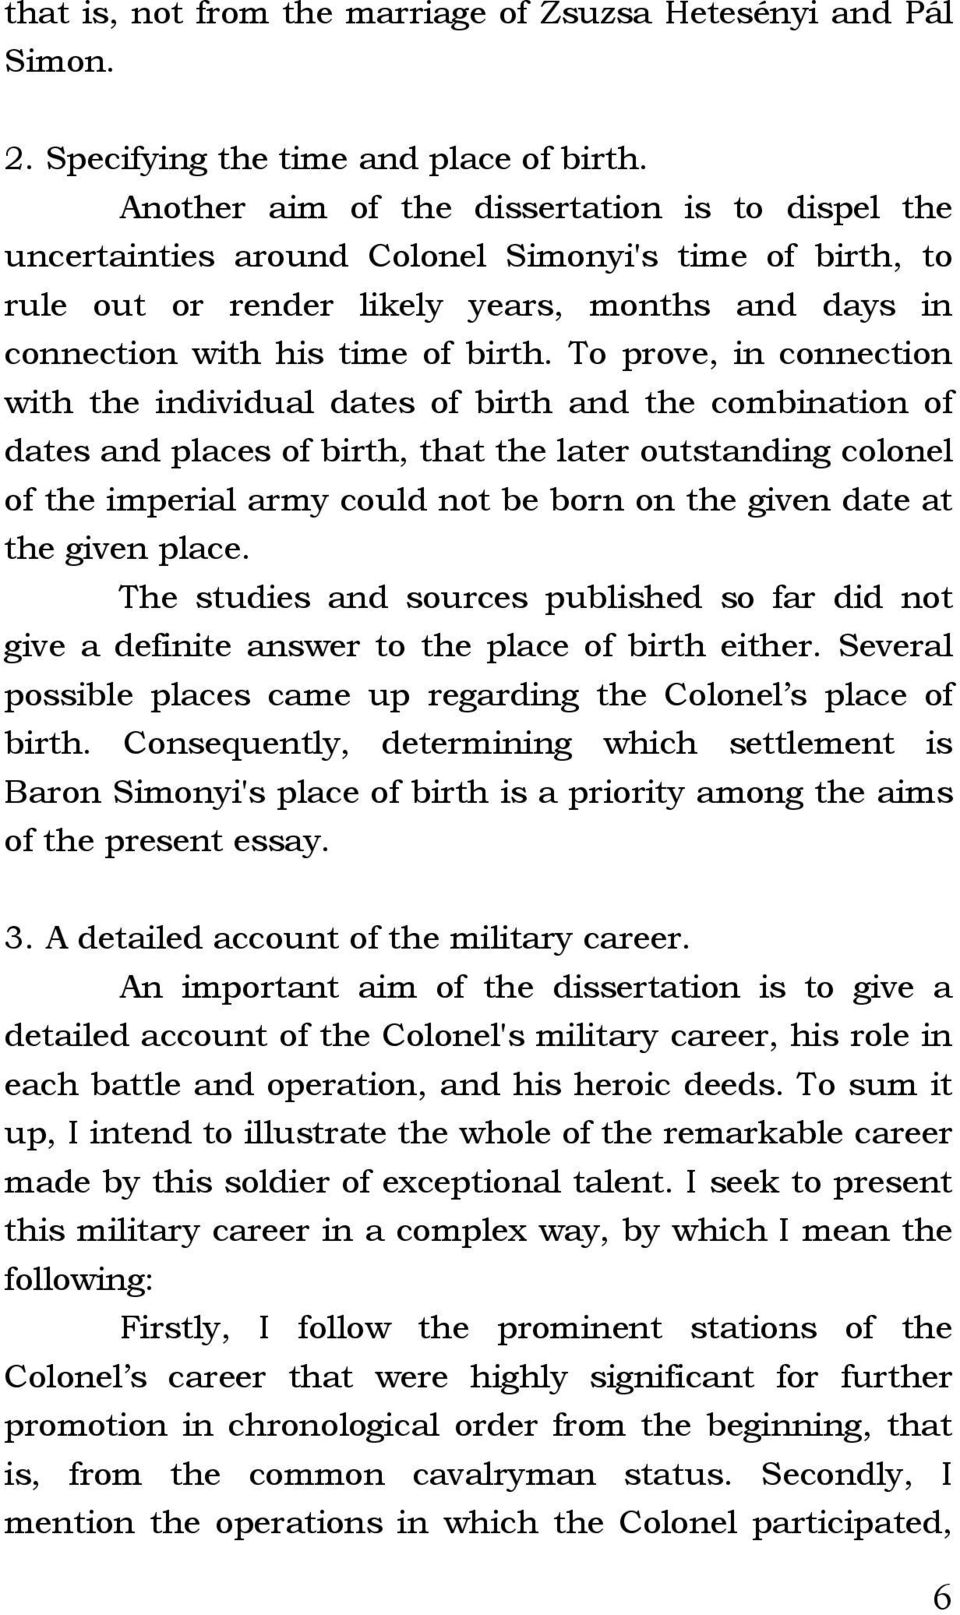 To prove, in connection with the individual dates of birth and the combination of dates and places of birth, that the later outstanding colonel of the imperial army could not be born on the given